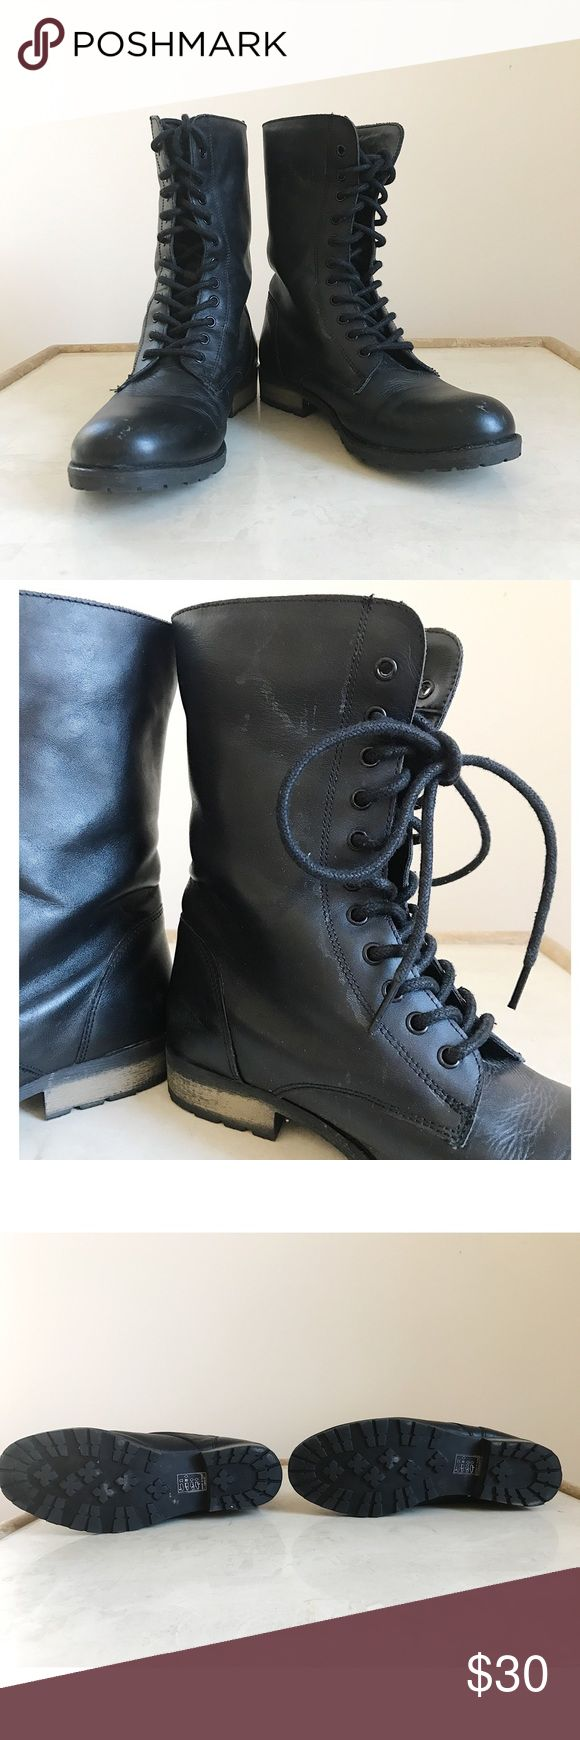 """Black Combat Boots Your basic black combat boot. A necessity in everyone's wardrobe. Goes with just about every outfit imaginable! Hits at about mid calf. 1"""" Heel, 8"""" Shaft. Lightly worn! A few scratches near the toes, and a few marks on side of the left boot which are barely noticeable while wearing. Brand Deena & Ozzy. Size 8. Good condition, lots of wear left! ✨ Deena & Ozzy Shoes Combat & Moto Boots"""